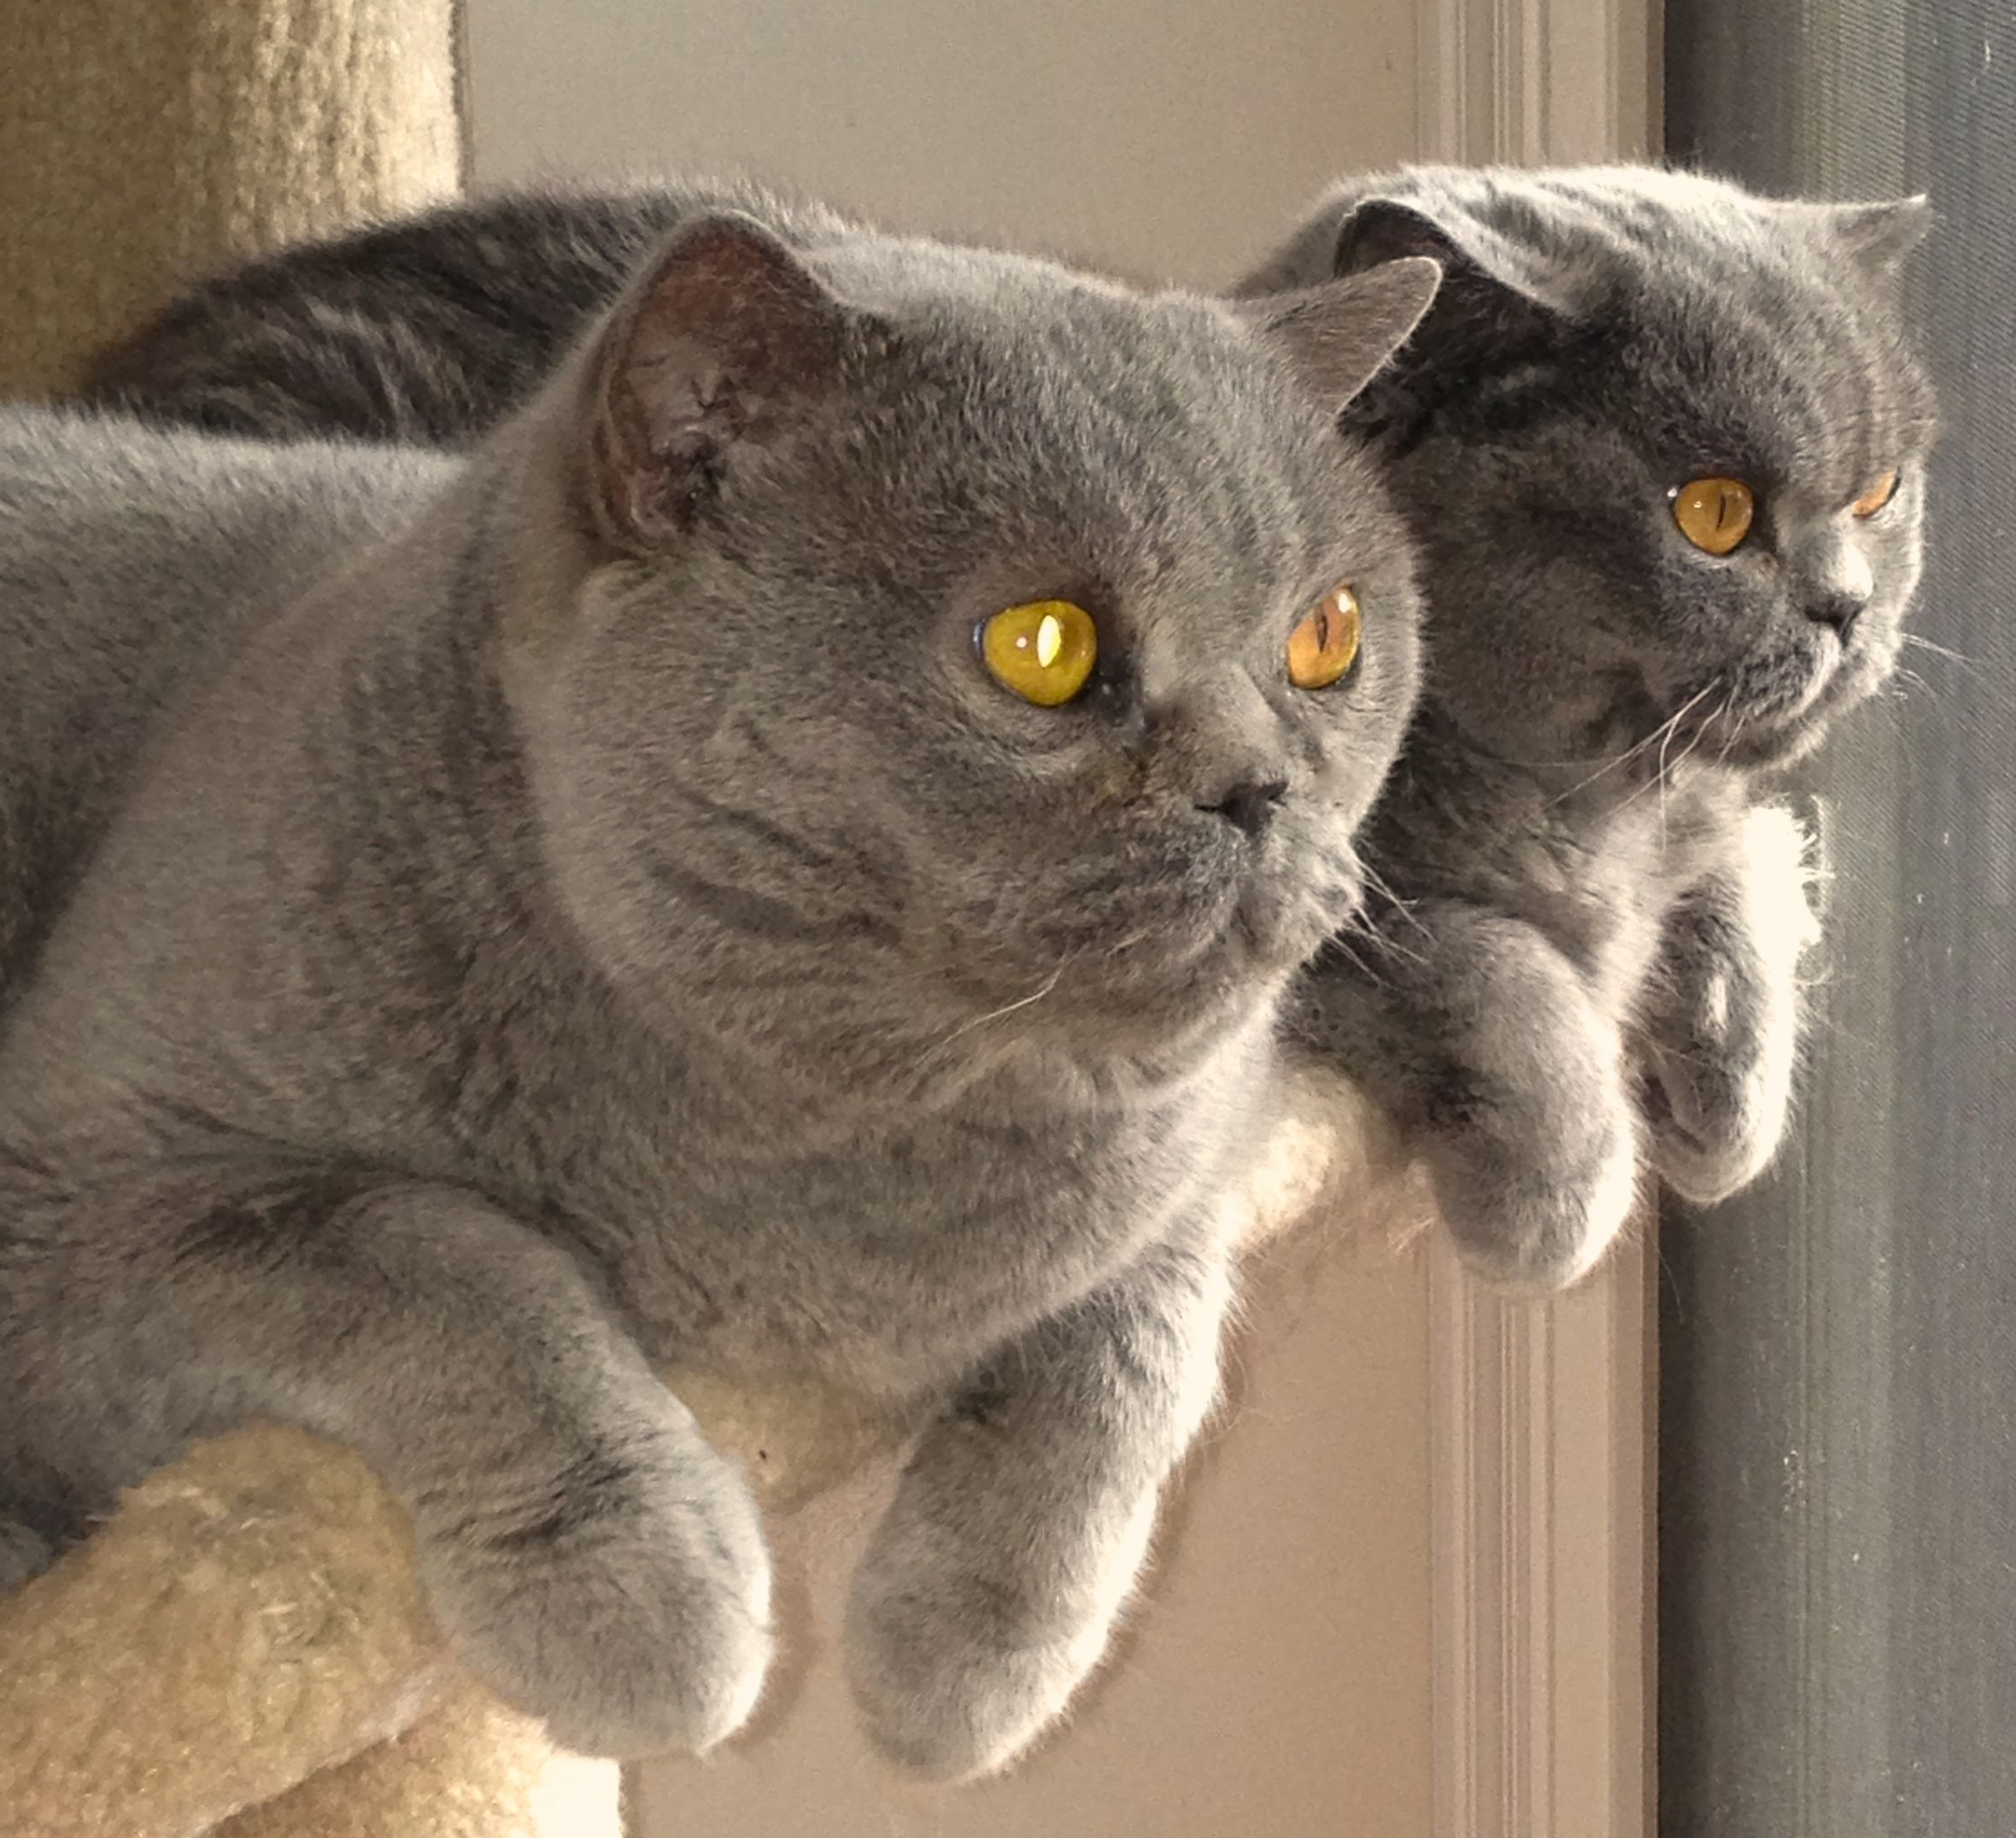 Blue British Shorthairs The cat in front was the 1 Brit